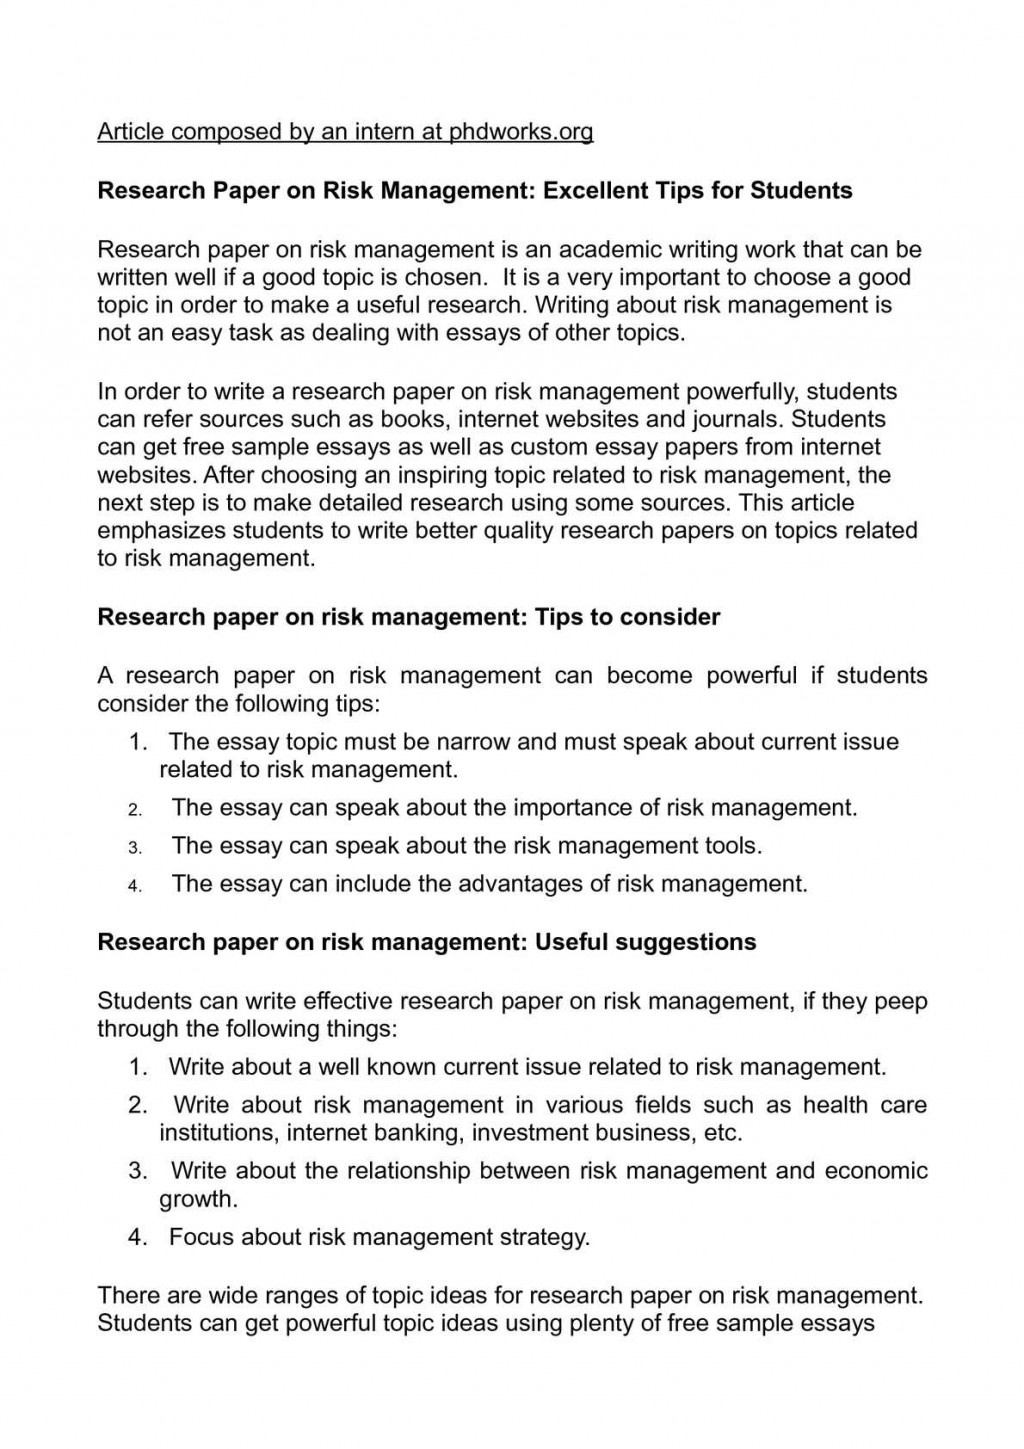 009 P1 Order Researchs Striking Research Papers Large